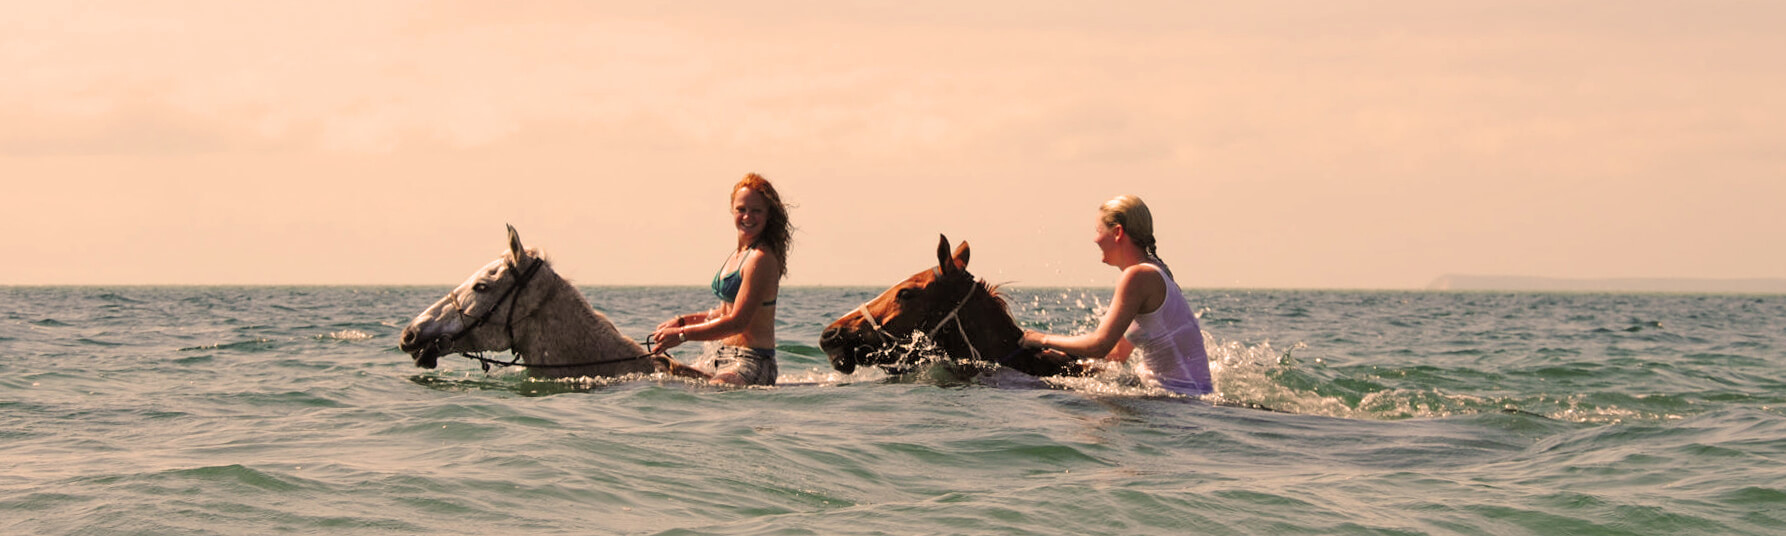 Swimming with horses at Mozambique Horse Safari